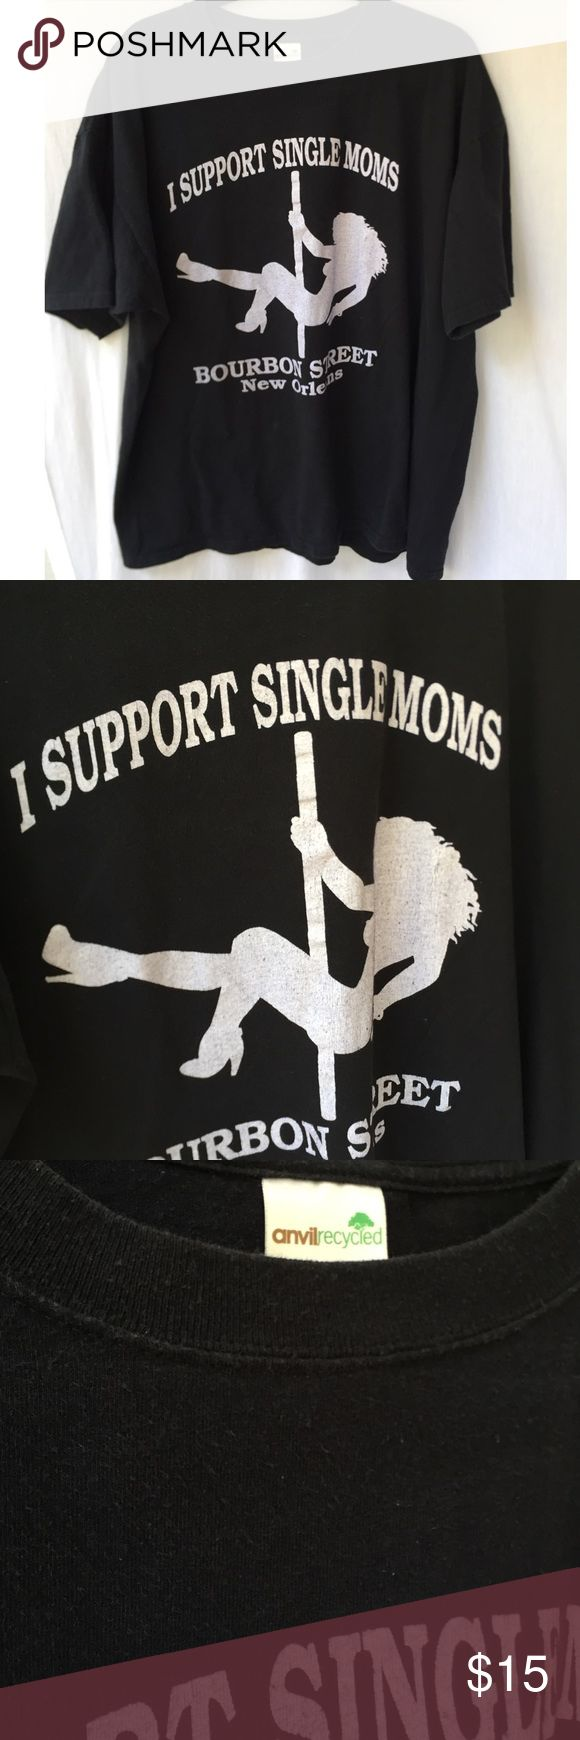 I SUPPORT SINGLE MOMS STRIPPER TSHIRT size 2X. Worn condition fabric worn from washing as seen in close up photos, no stains or major flaws. Vintage. Tagged for views. FREE SURPRISE GIFT WITH EVERY ORDER! UNIF Tops Tees - Short Sleeve